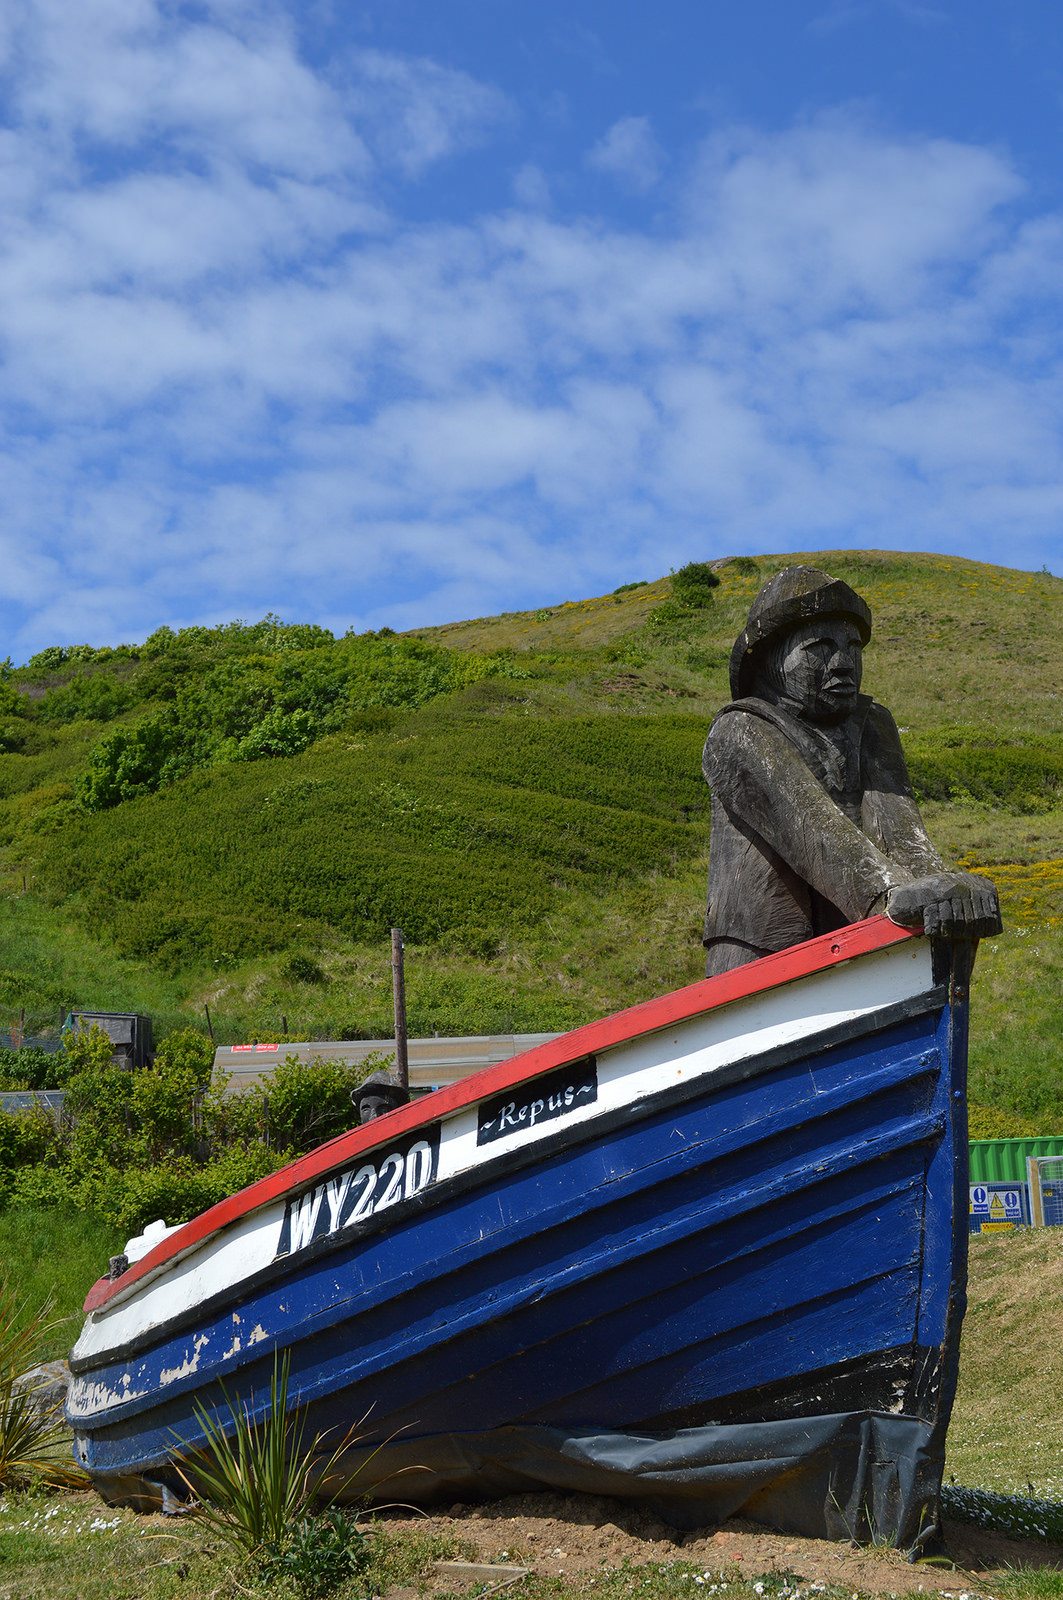 Repus restored fishing coble with carved fisherman, Skinningrove